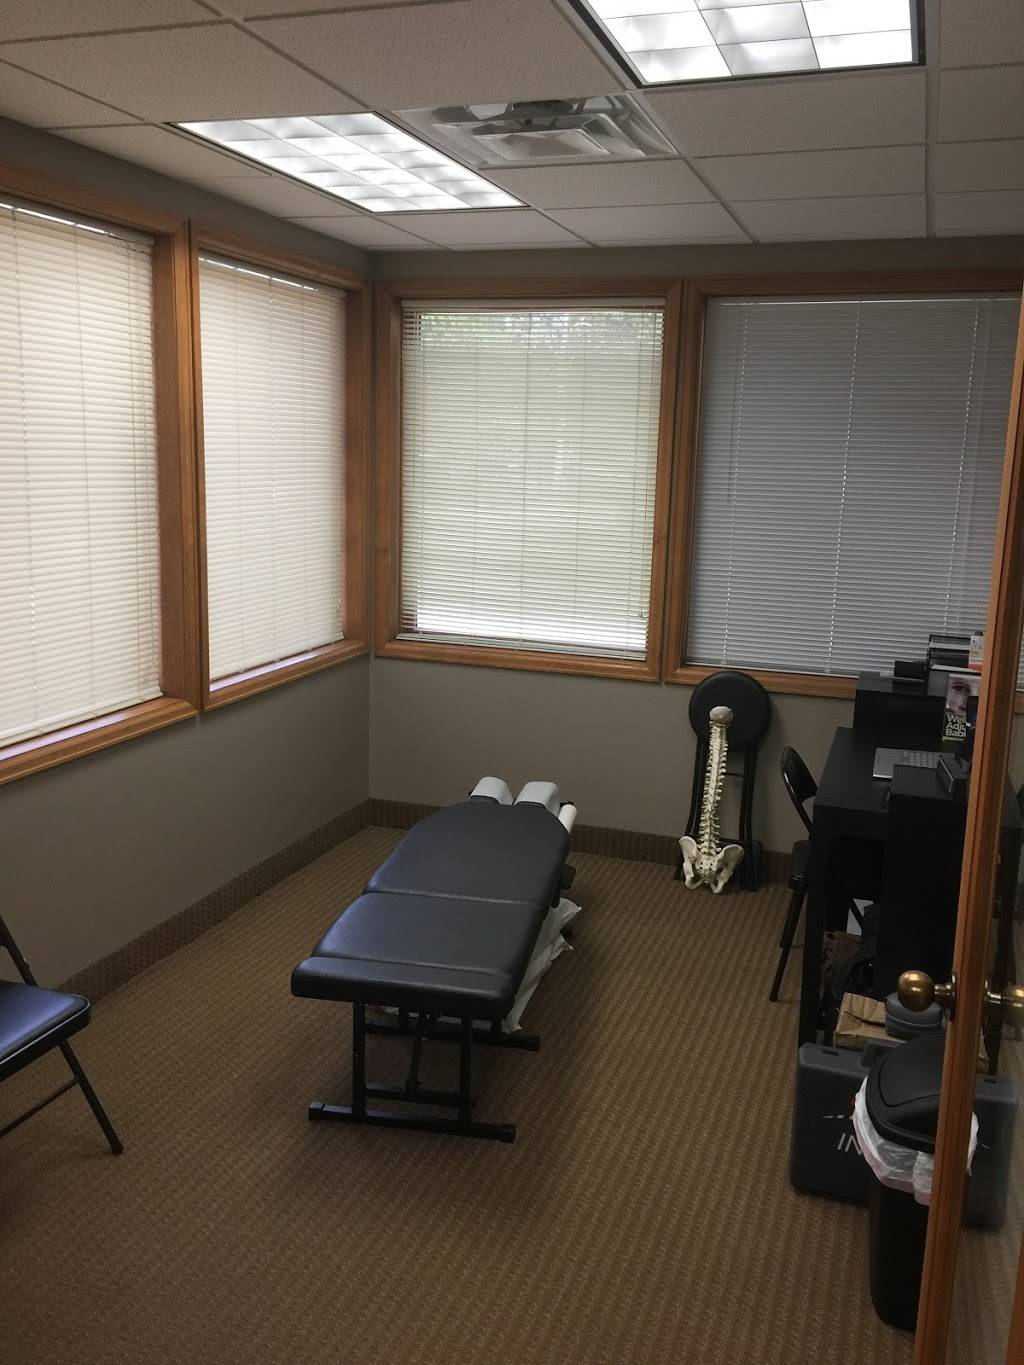 True Life Chiropractic - health  | Photo 5 of 7 | Address: 13780 E Rice Pl Suite 114, Aurora, CO 80015, USA | Phone: (940) 293-5507